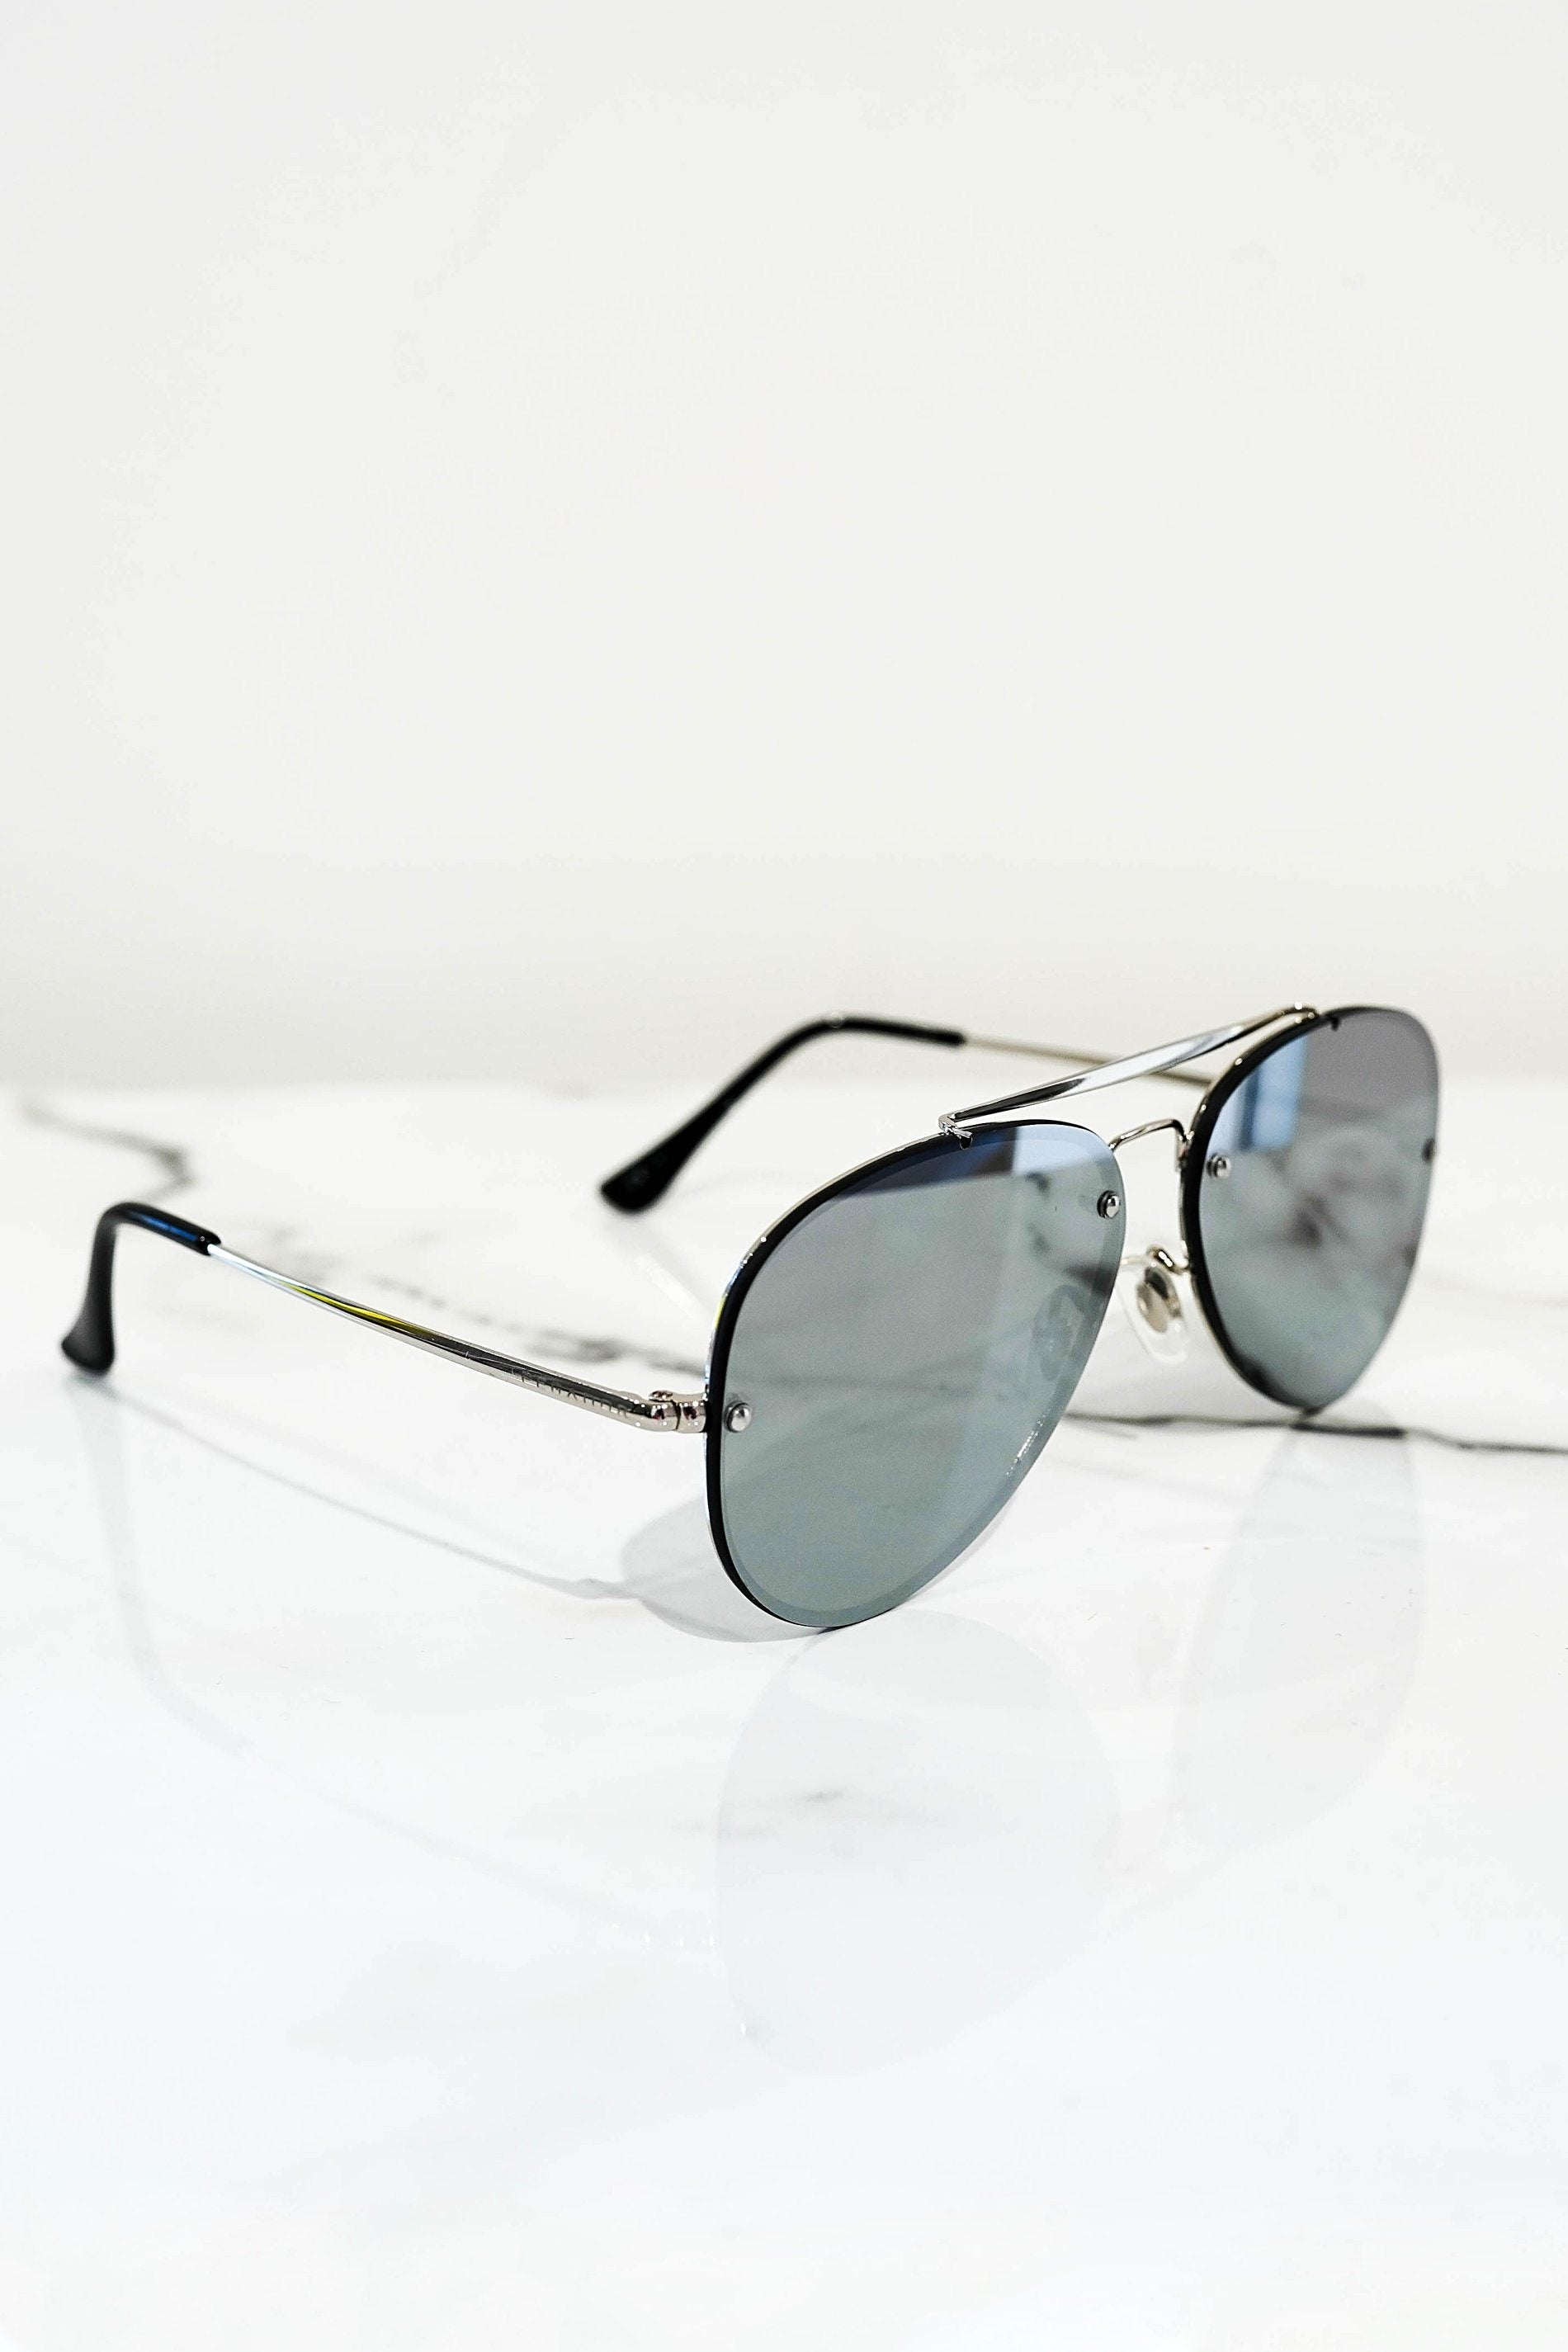 Aviator sunglasses Silver With mirrored lens - PEGADOR - Dominate the Hype